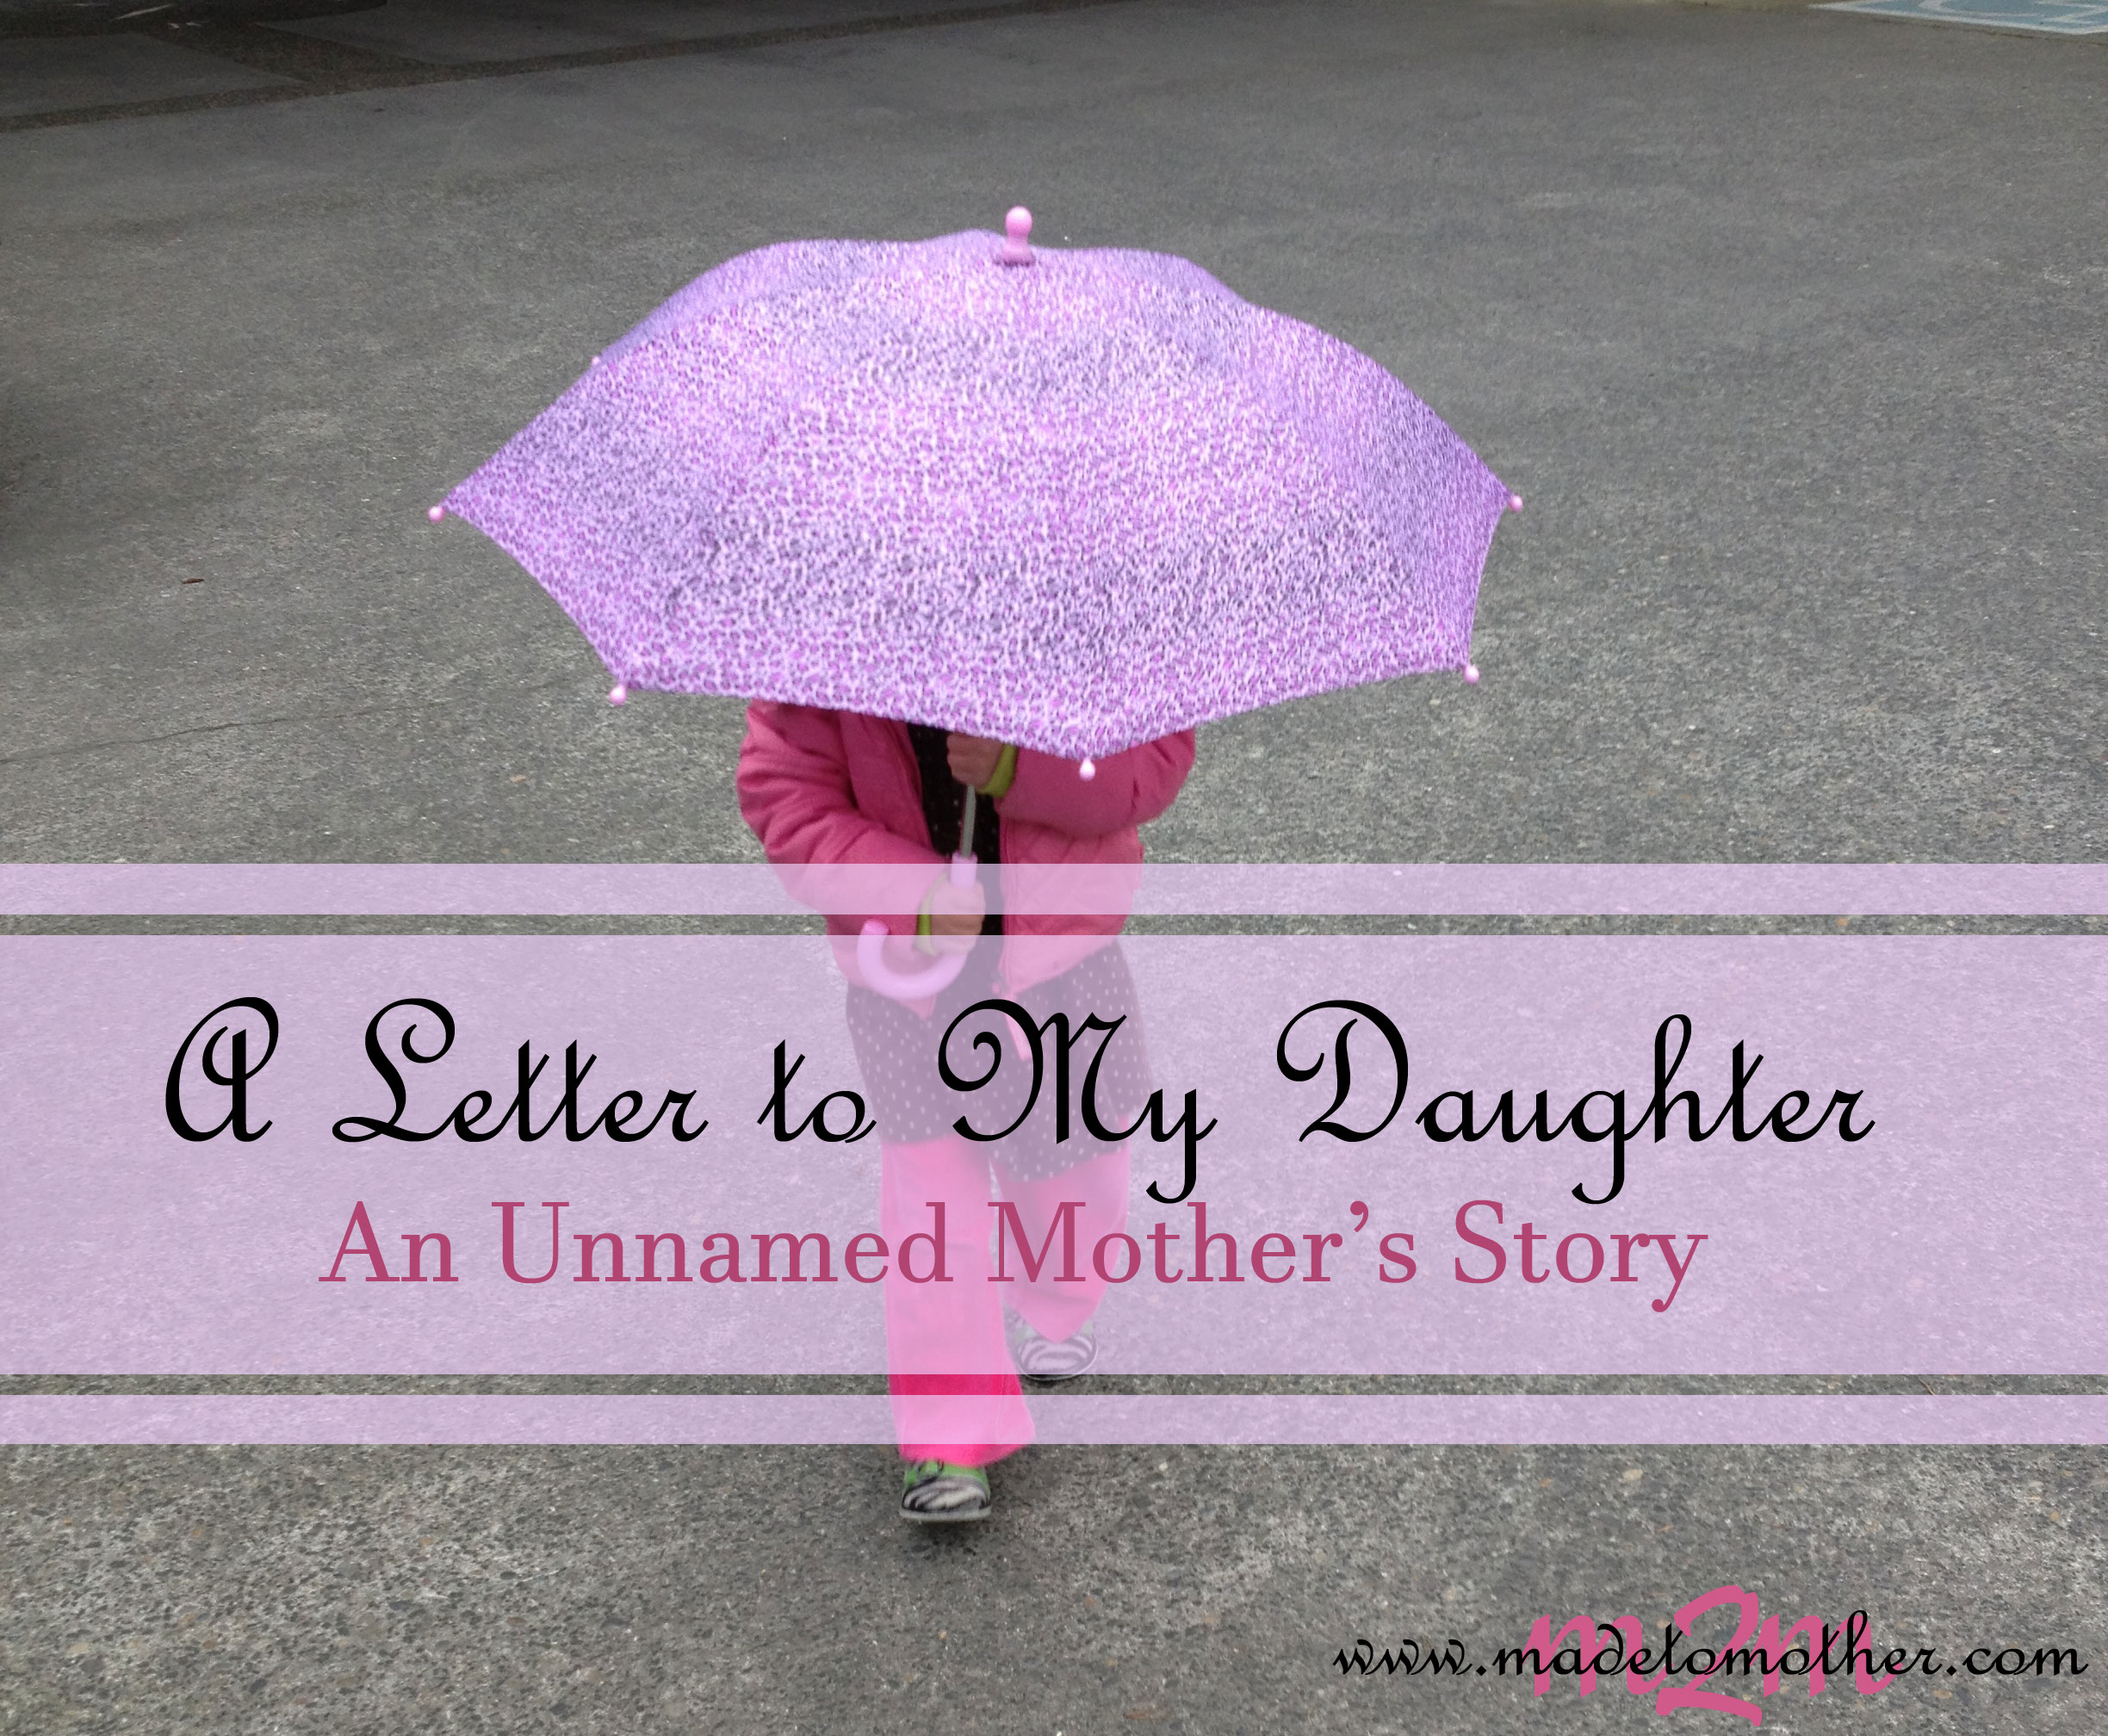 A letter to my daughter an unnamed mothers story altavistaventures Choice Image